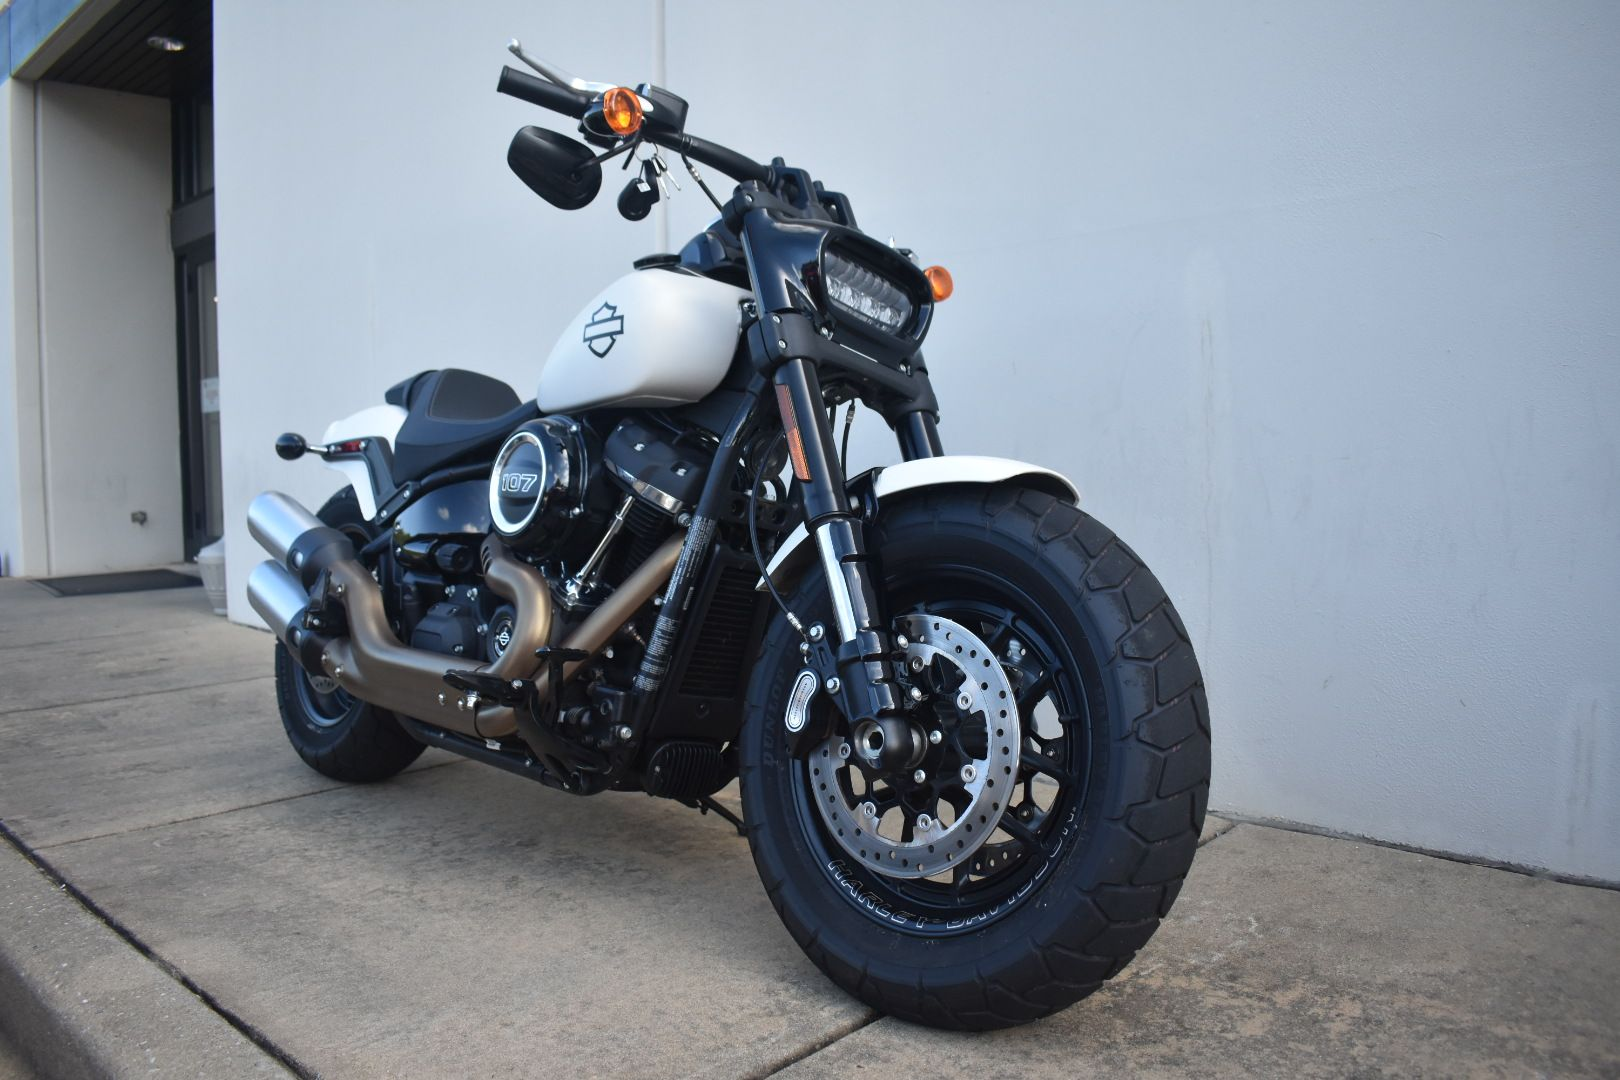 Pre-Owned 2018 Harley-Davidson Fat Bob FXFB